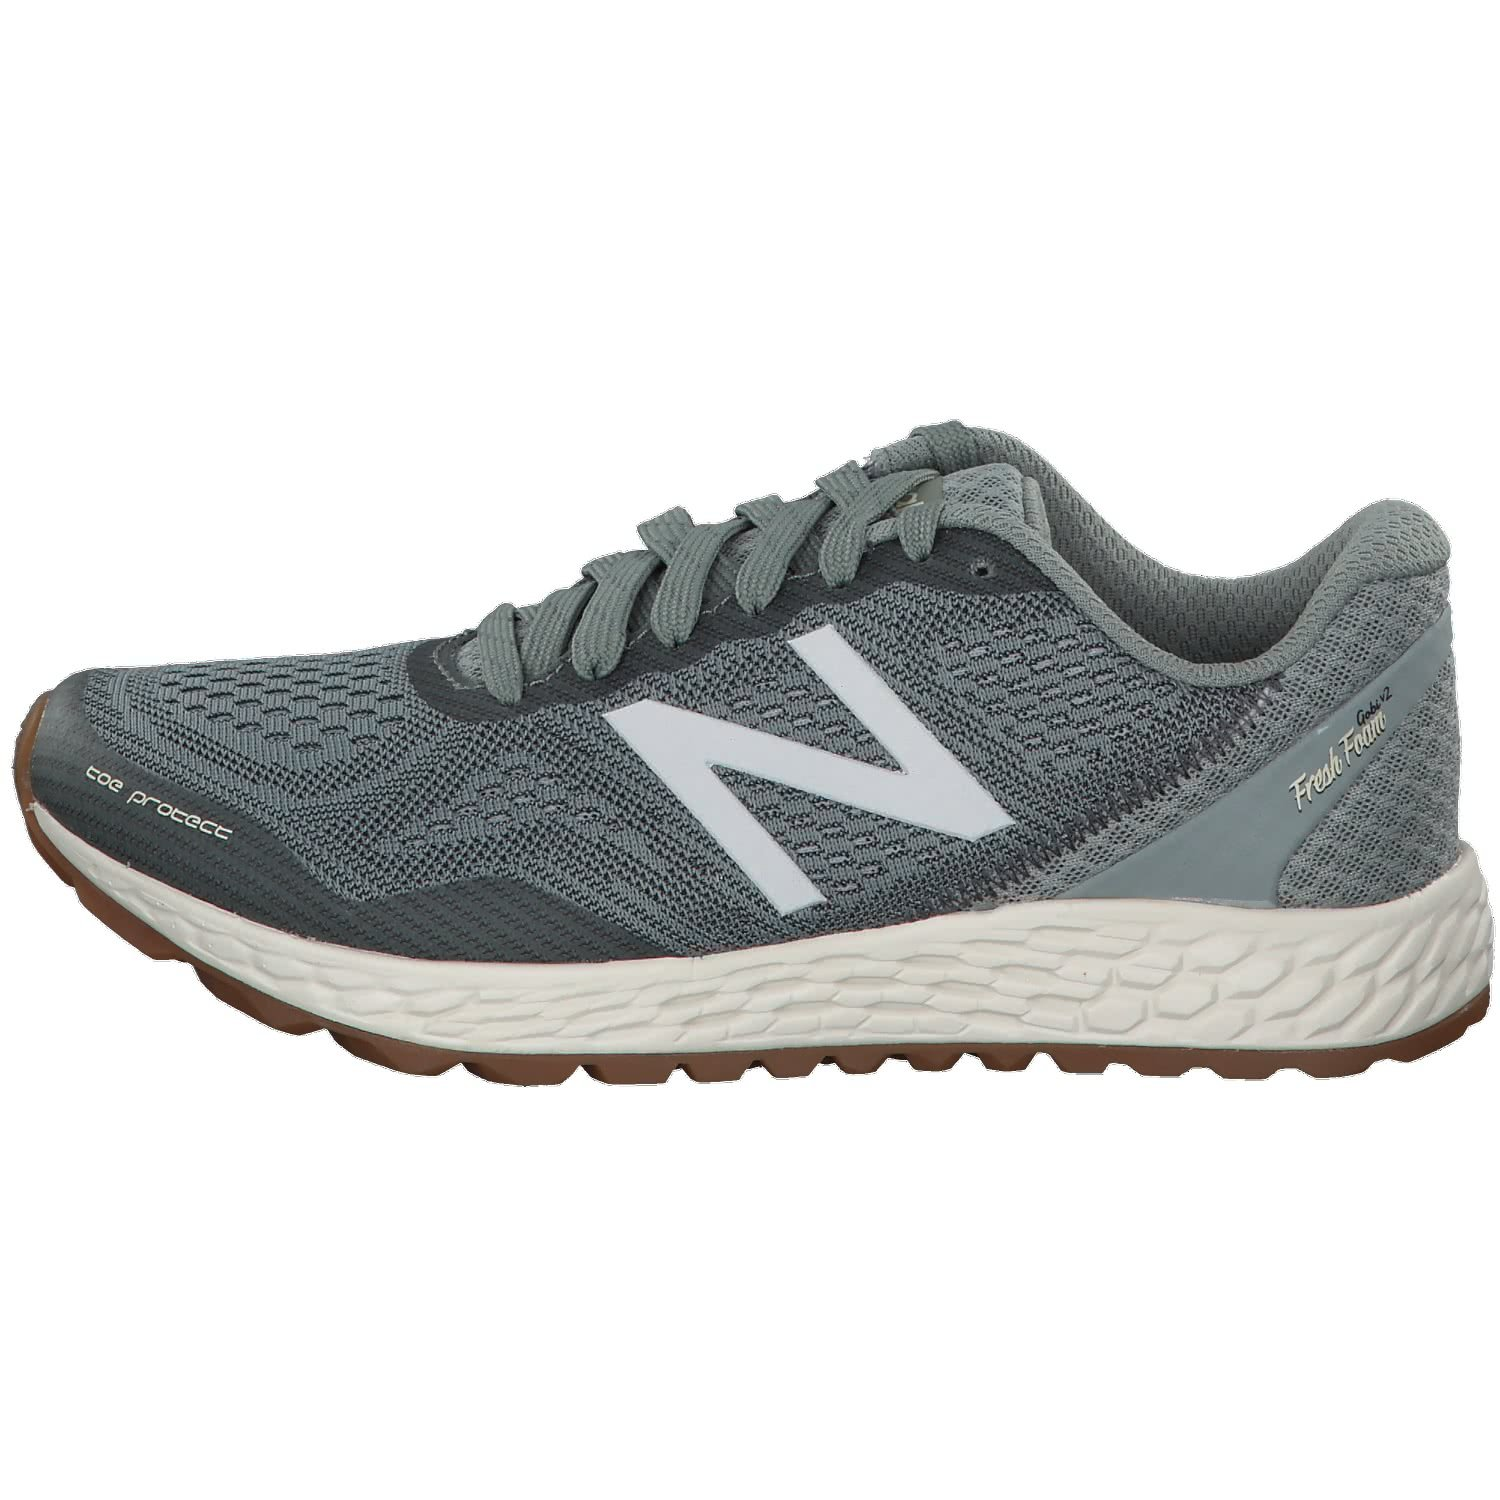 New Balance 1000 Zapatillas de correr